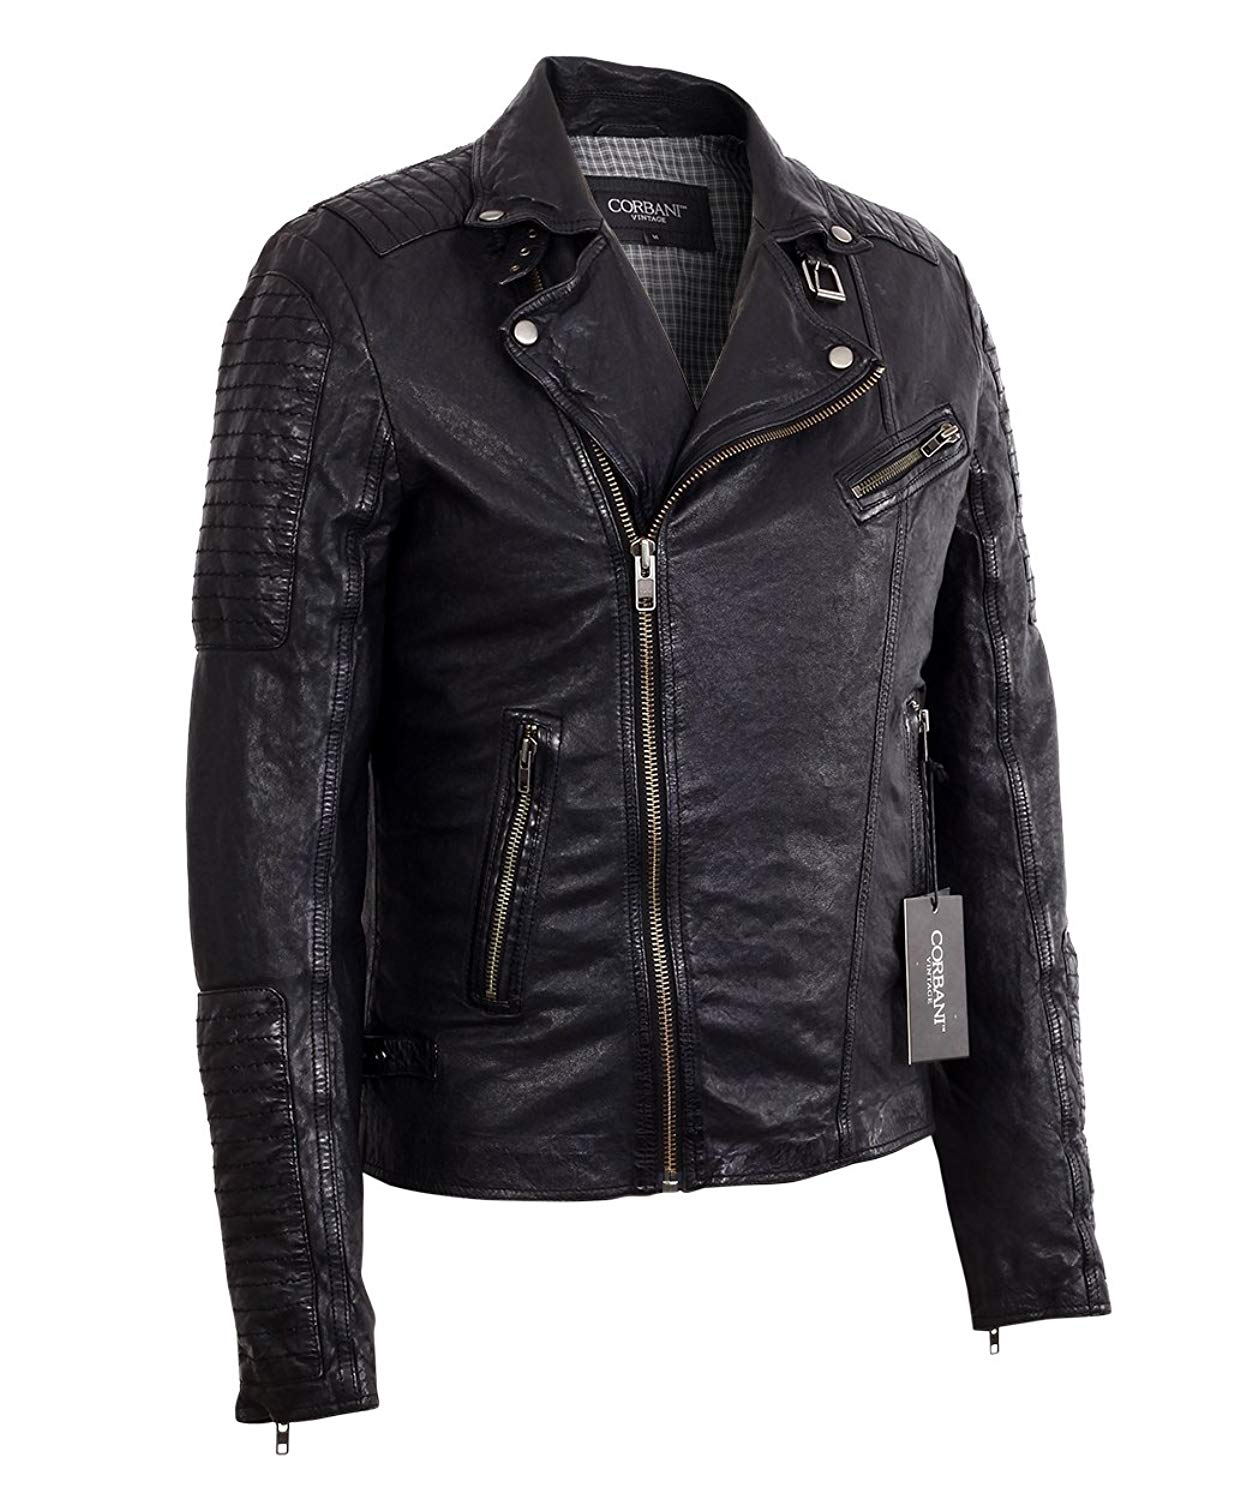 6d908afb57387 Get Quotations · Corbani Mens Asymmetrical Biker Vintage Black Lambskin  Real Leather Jacket